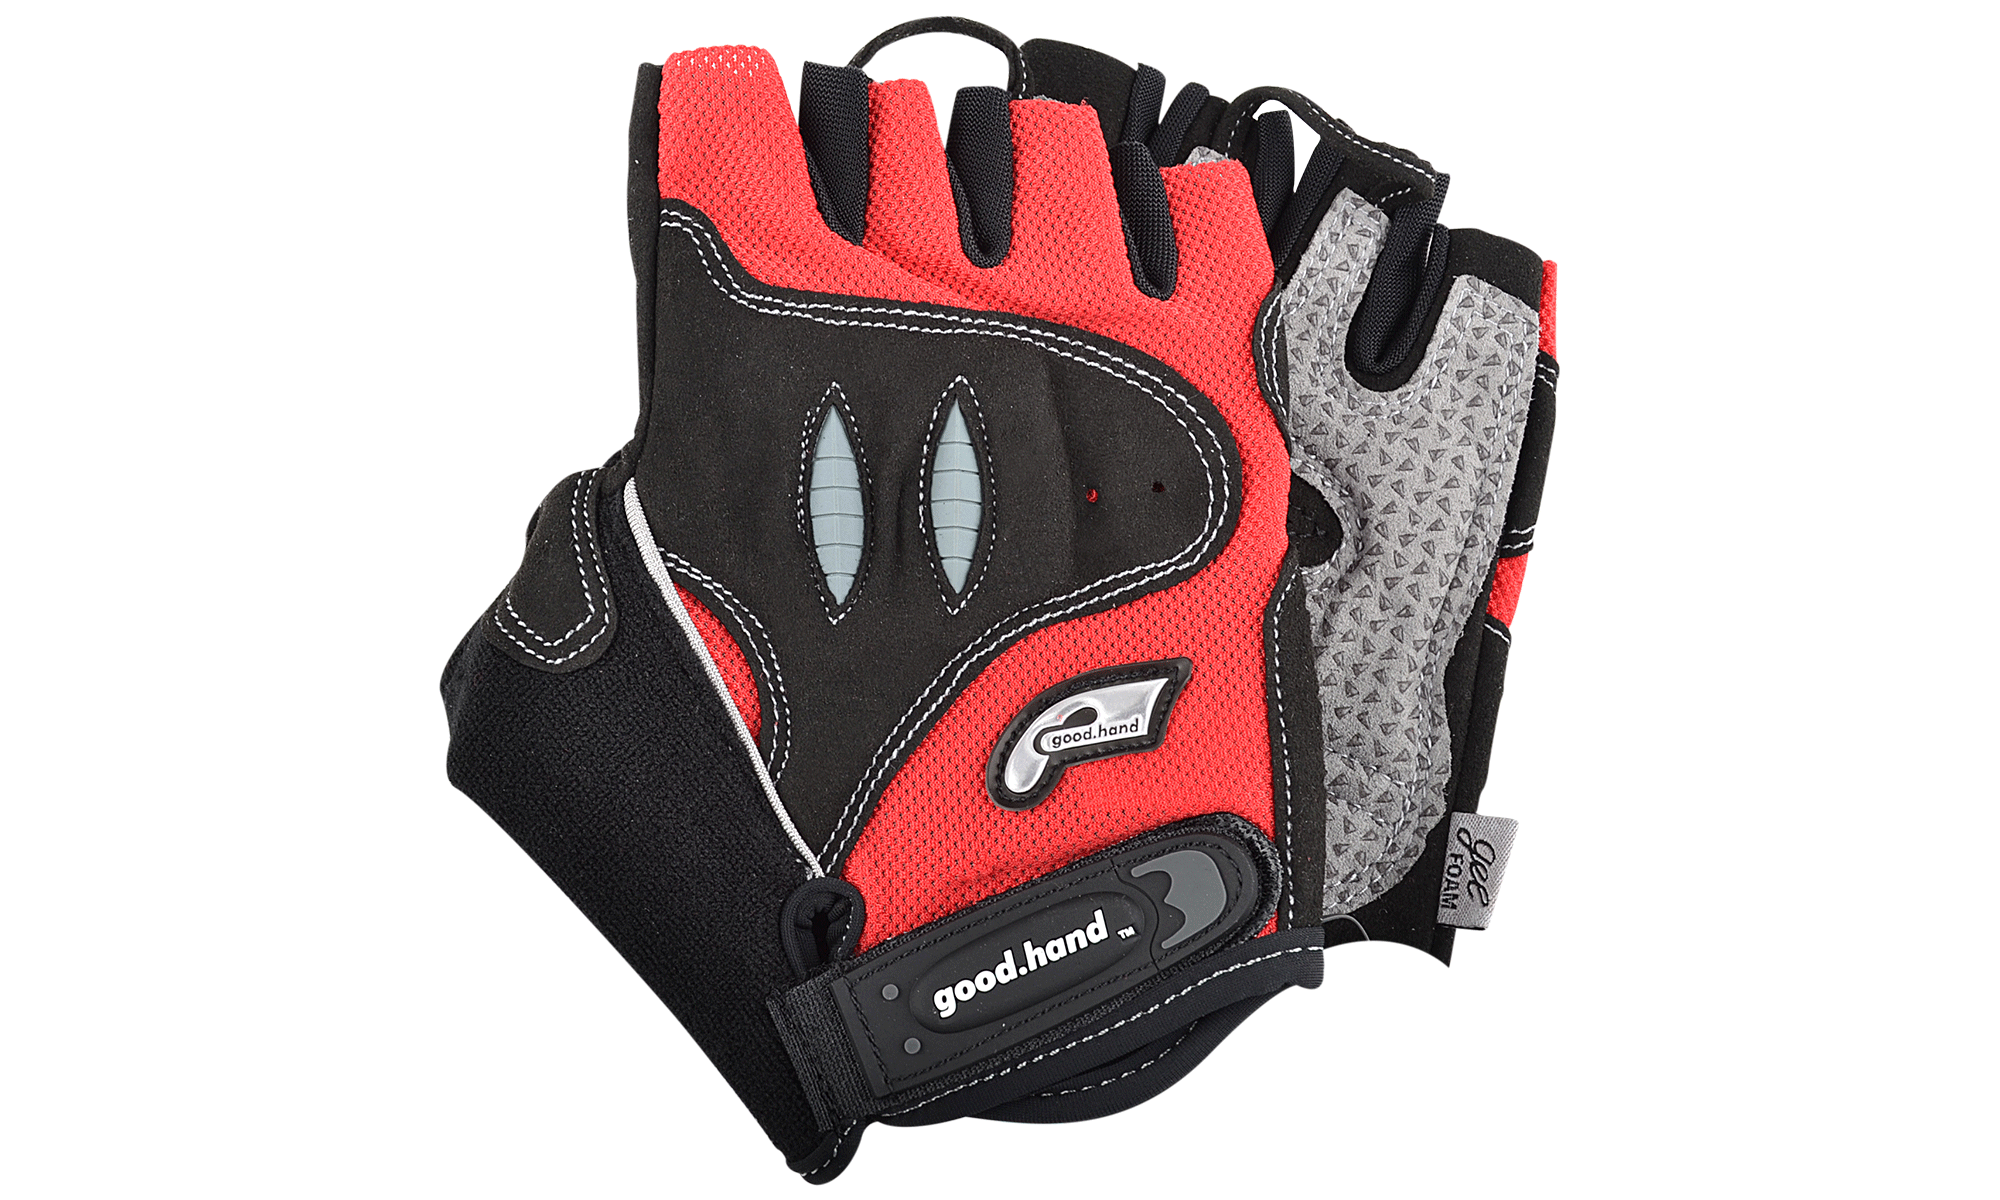 Good Hand Half Finger Gloves Red